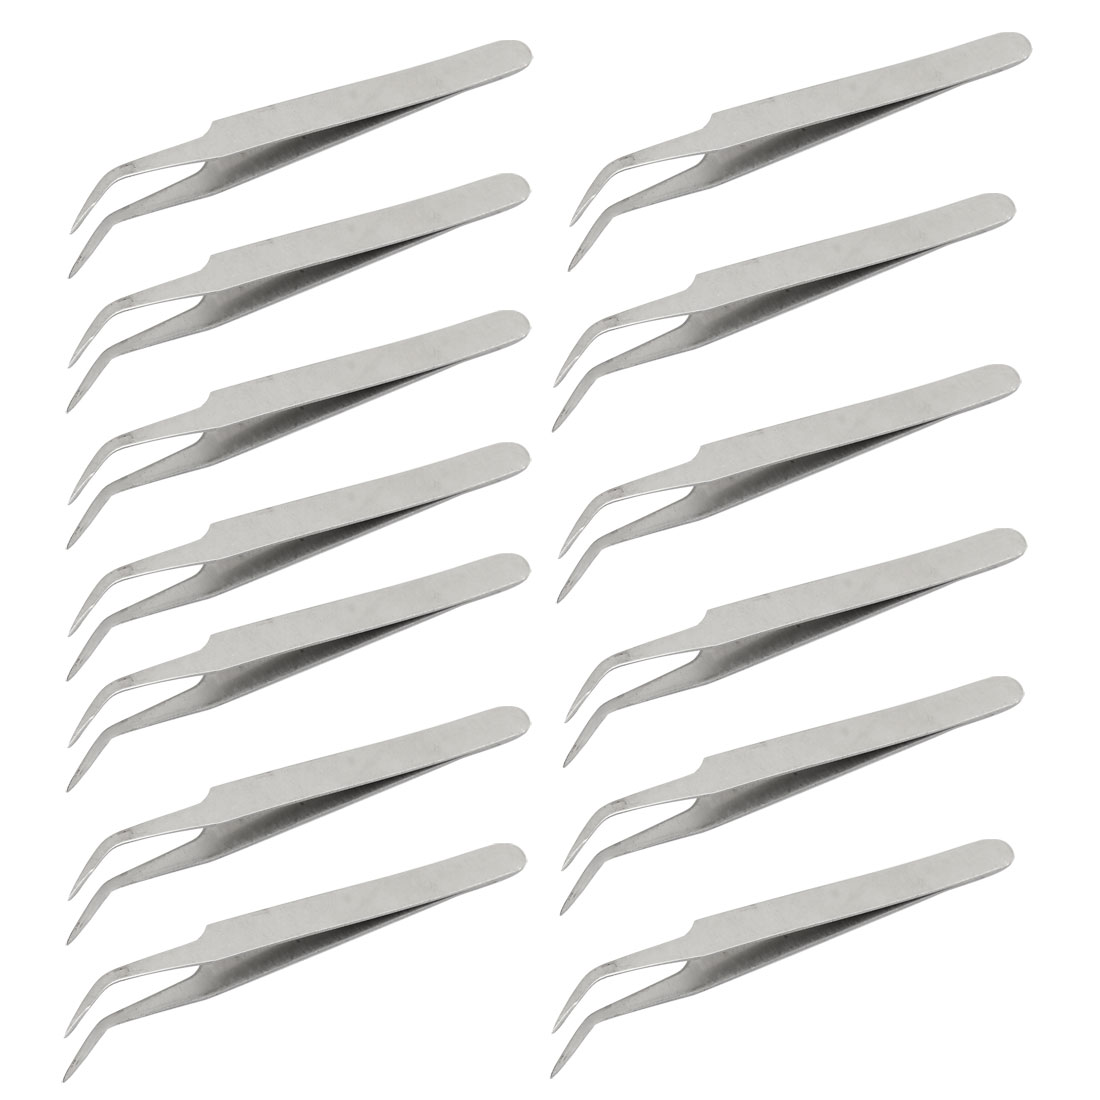 13 Pcs Silver Tone 115mm Length Curved Polished Tip Tweezers Pliers Repair Hand Tool